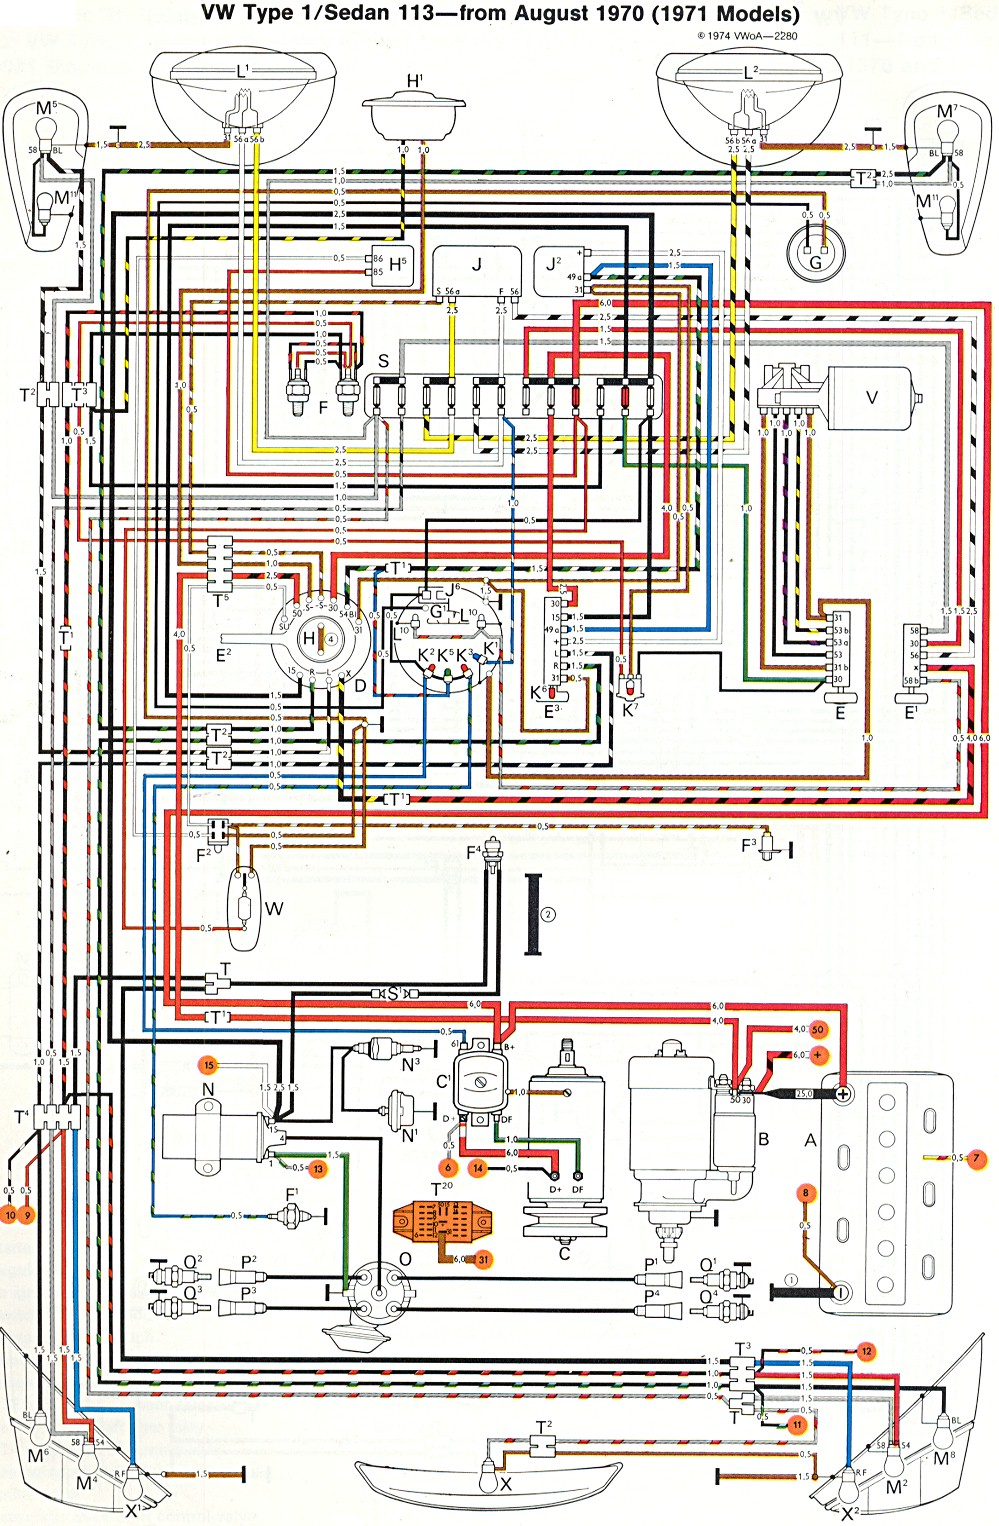 bug_super_71 1971 super beetle wiring diagram thegoldenbug com 1973 vw wiring diagram at fashall.co